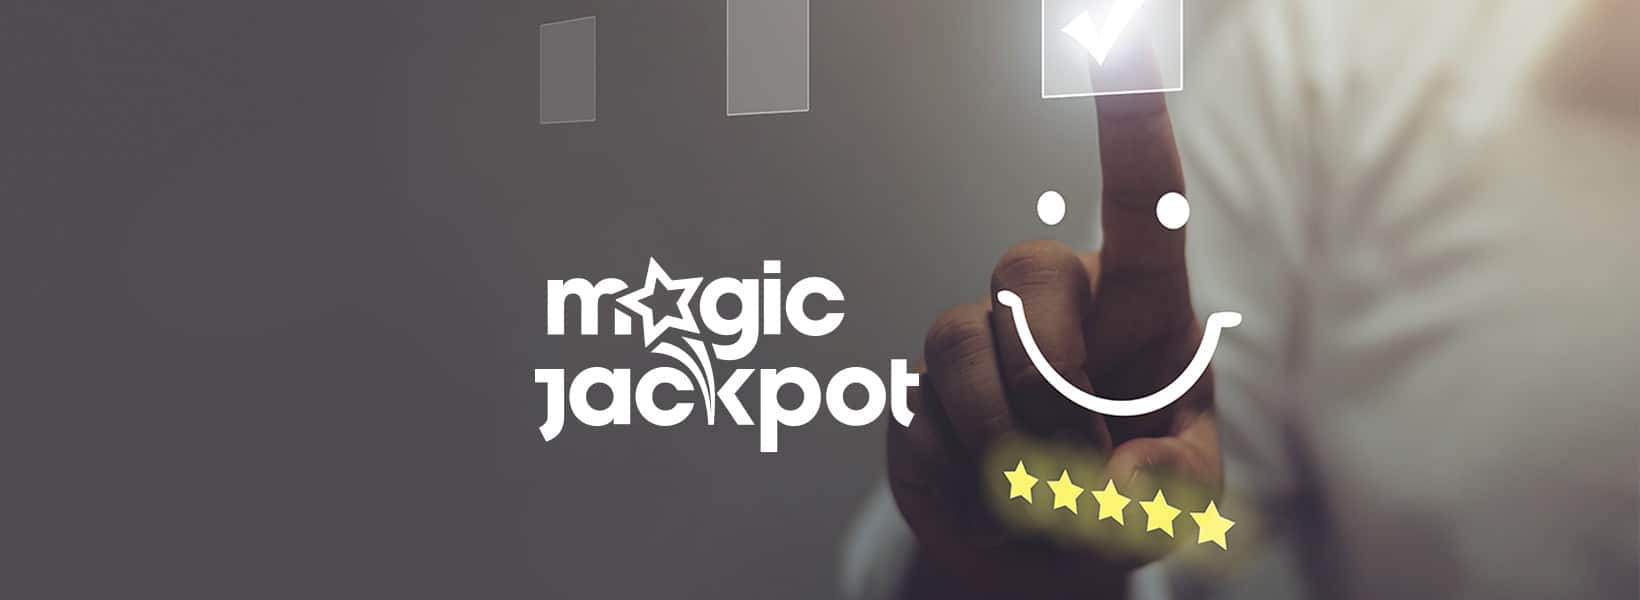 păreri magic jackpot